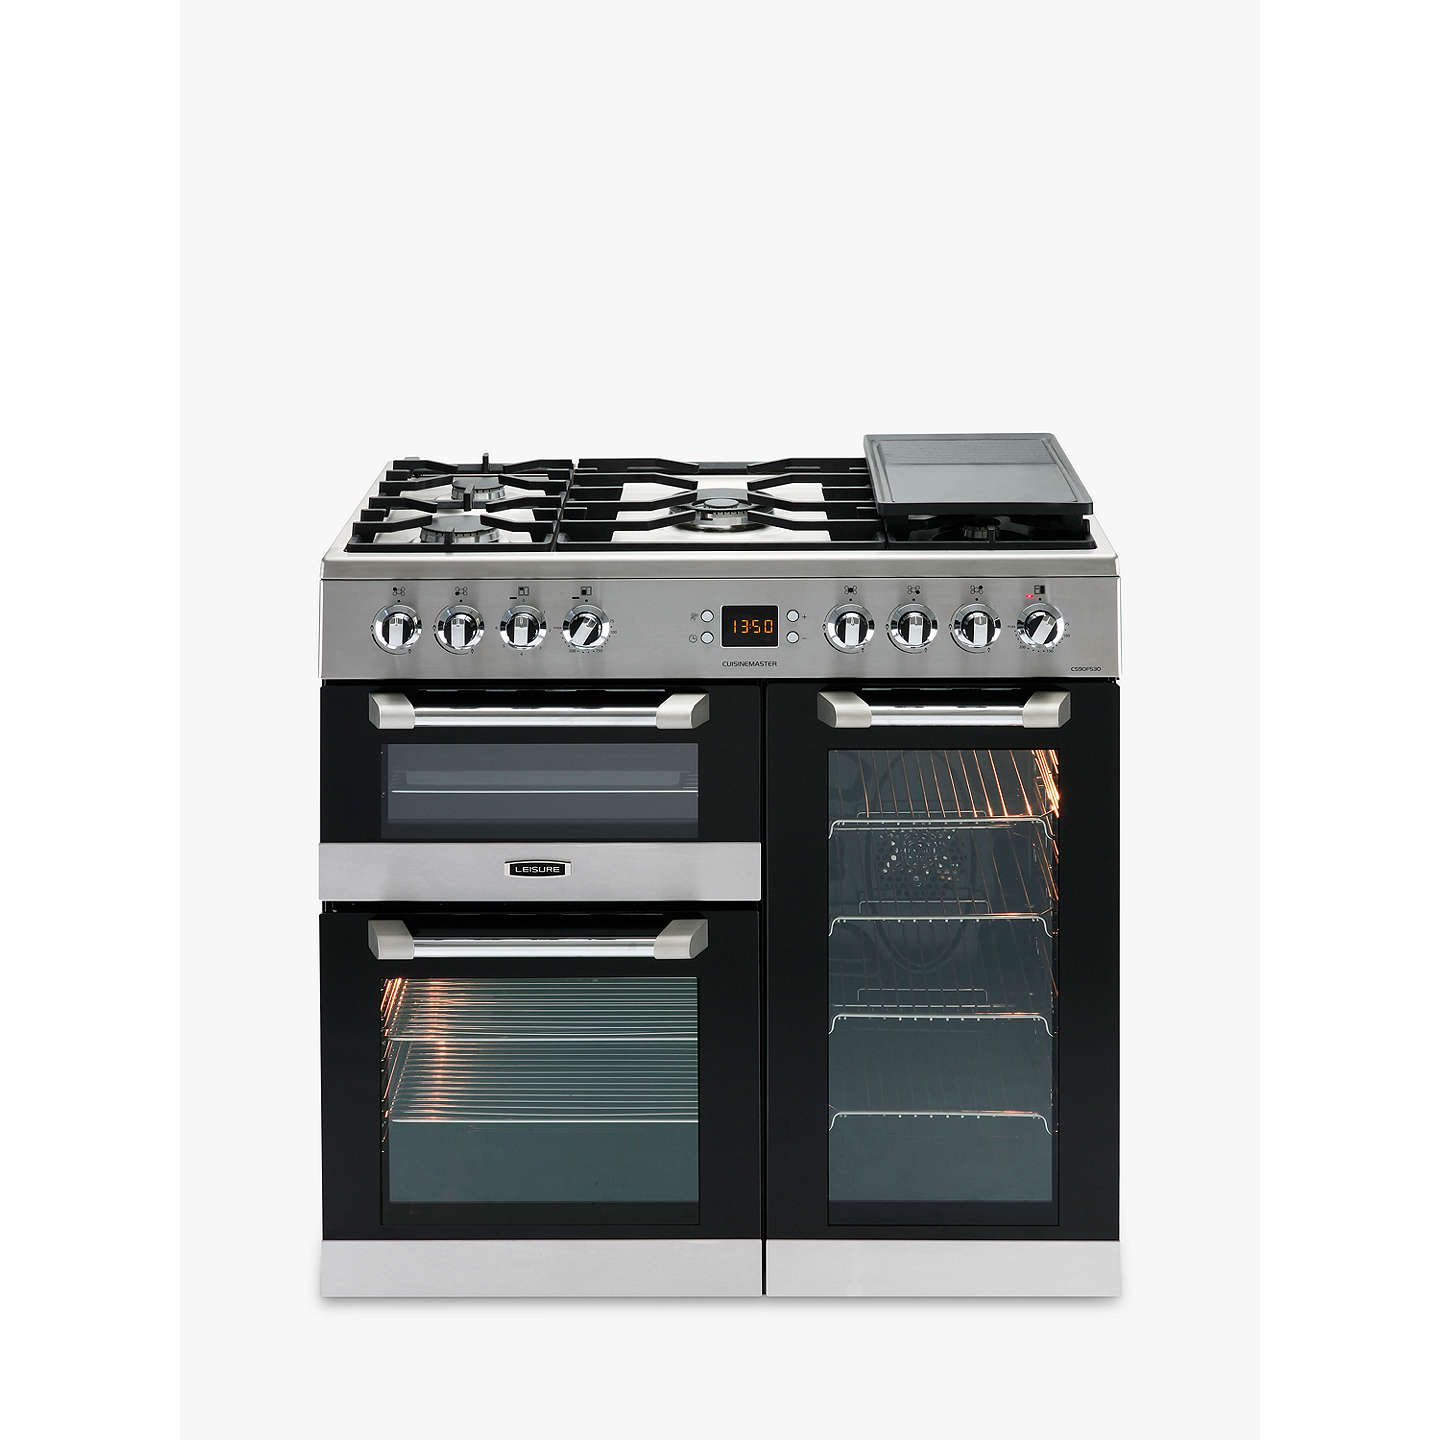 BuyLeisure CS90F530X Cuisinemaster Dual Fuel Range Cooker, Stainless Steel Online at johnlewis.com